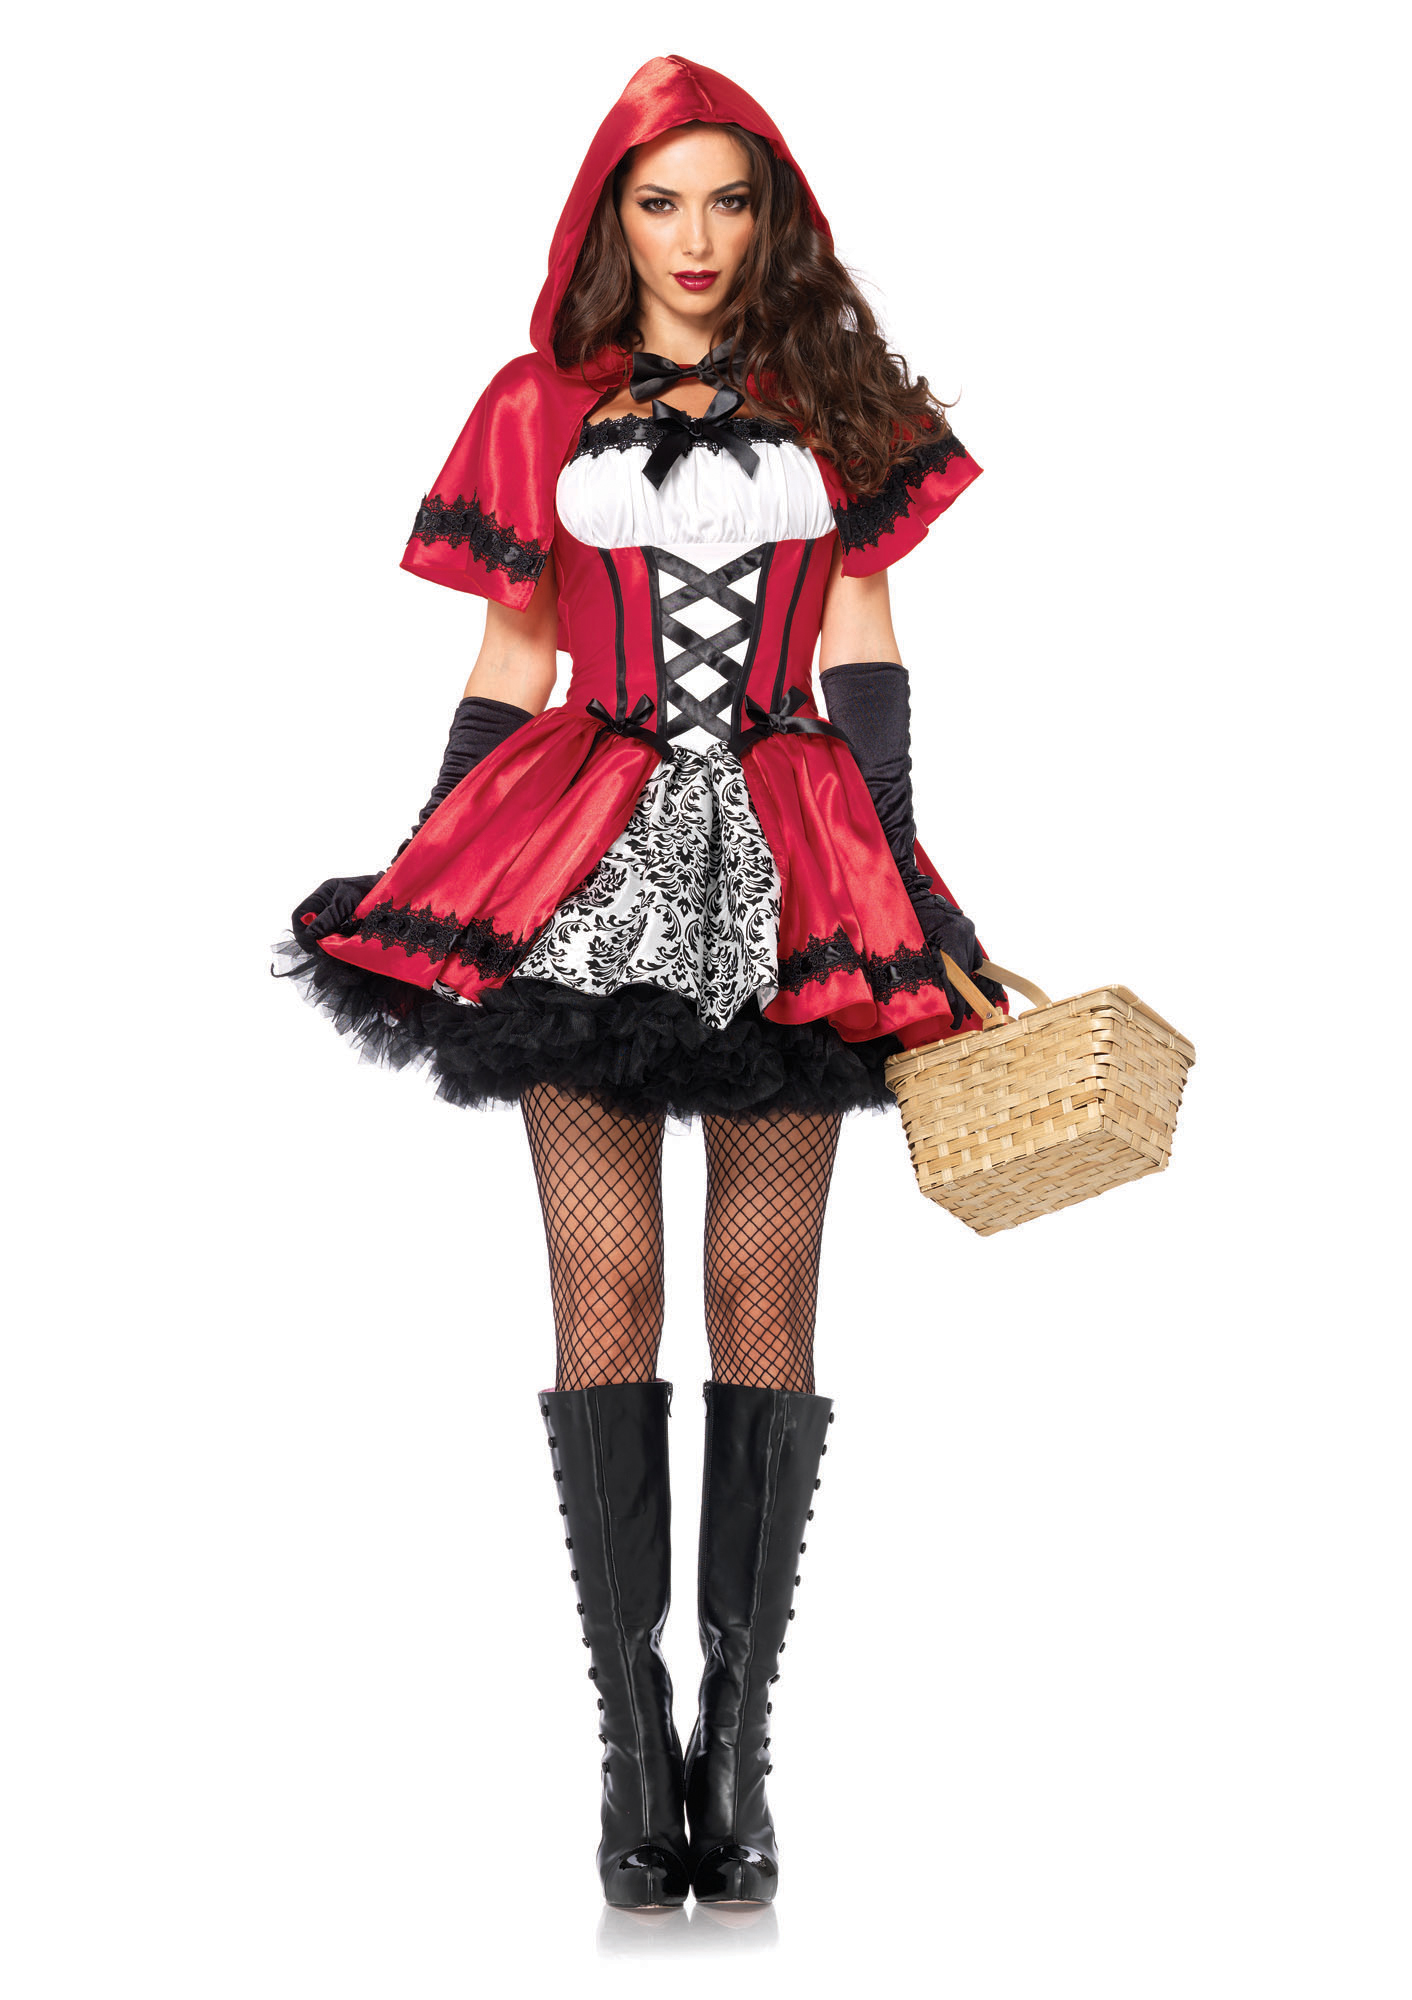 Leg Avenue Women's 2 Piece Gothic Red Riding Hood - Halloween Costumes for Women